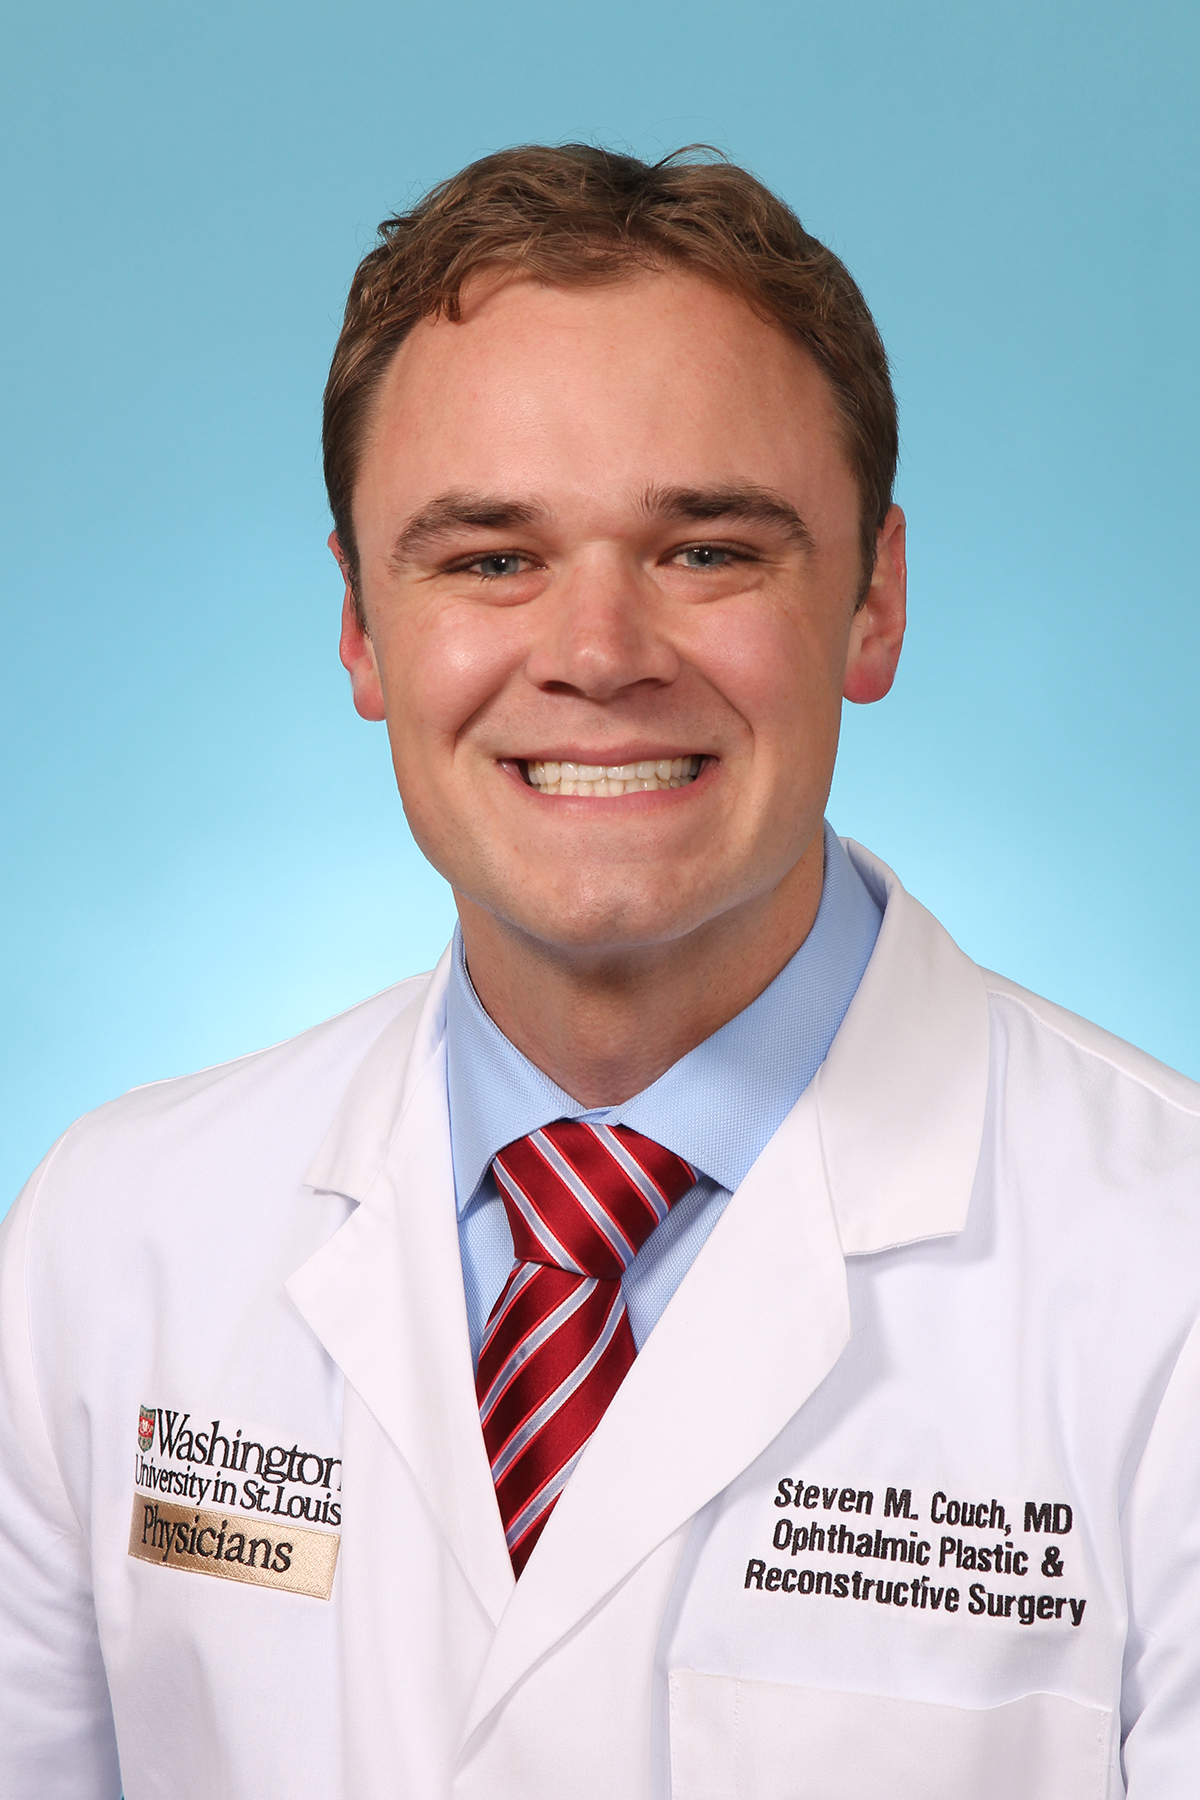 Dr. Steven M. Couch, MD